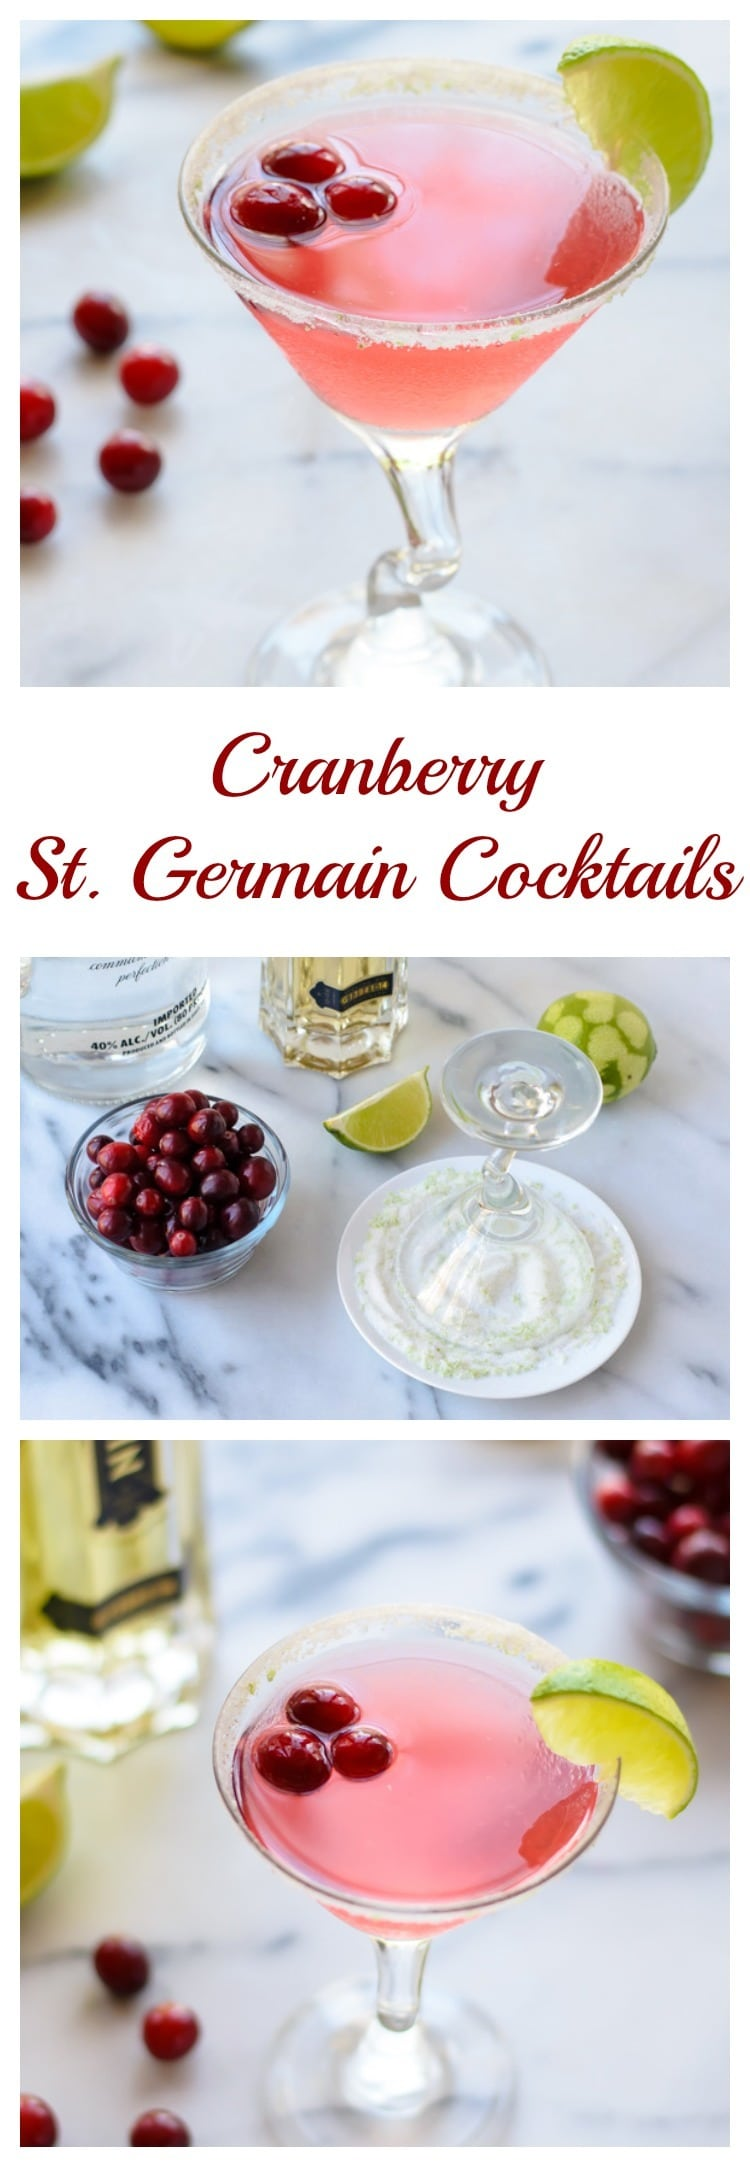 Cranberry St. Germain Cocktails. Warning: It is BOOZY. The perfect festive holiday drink!